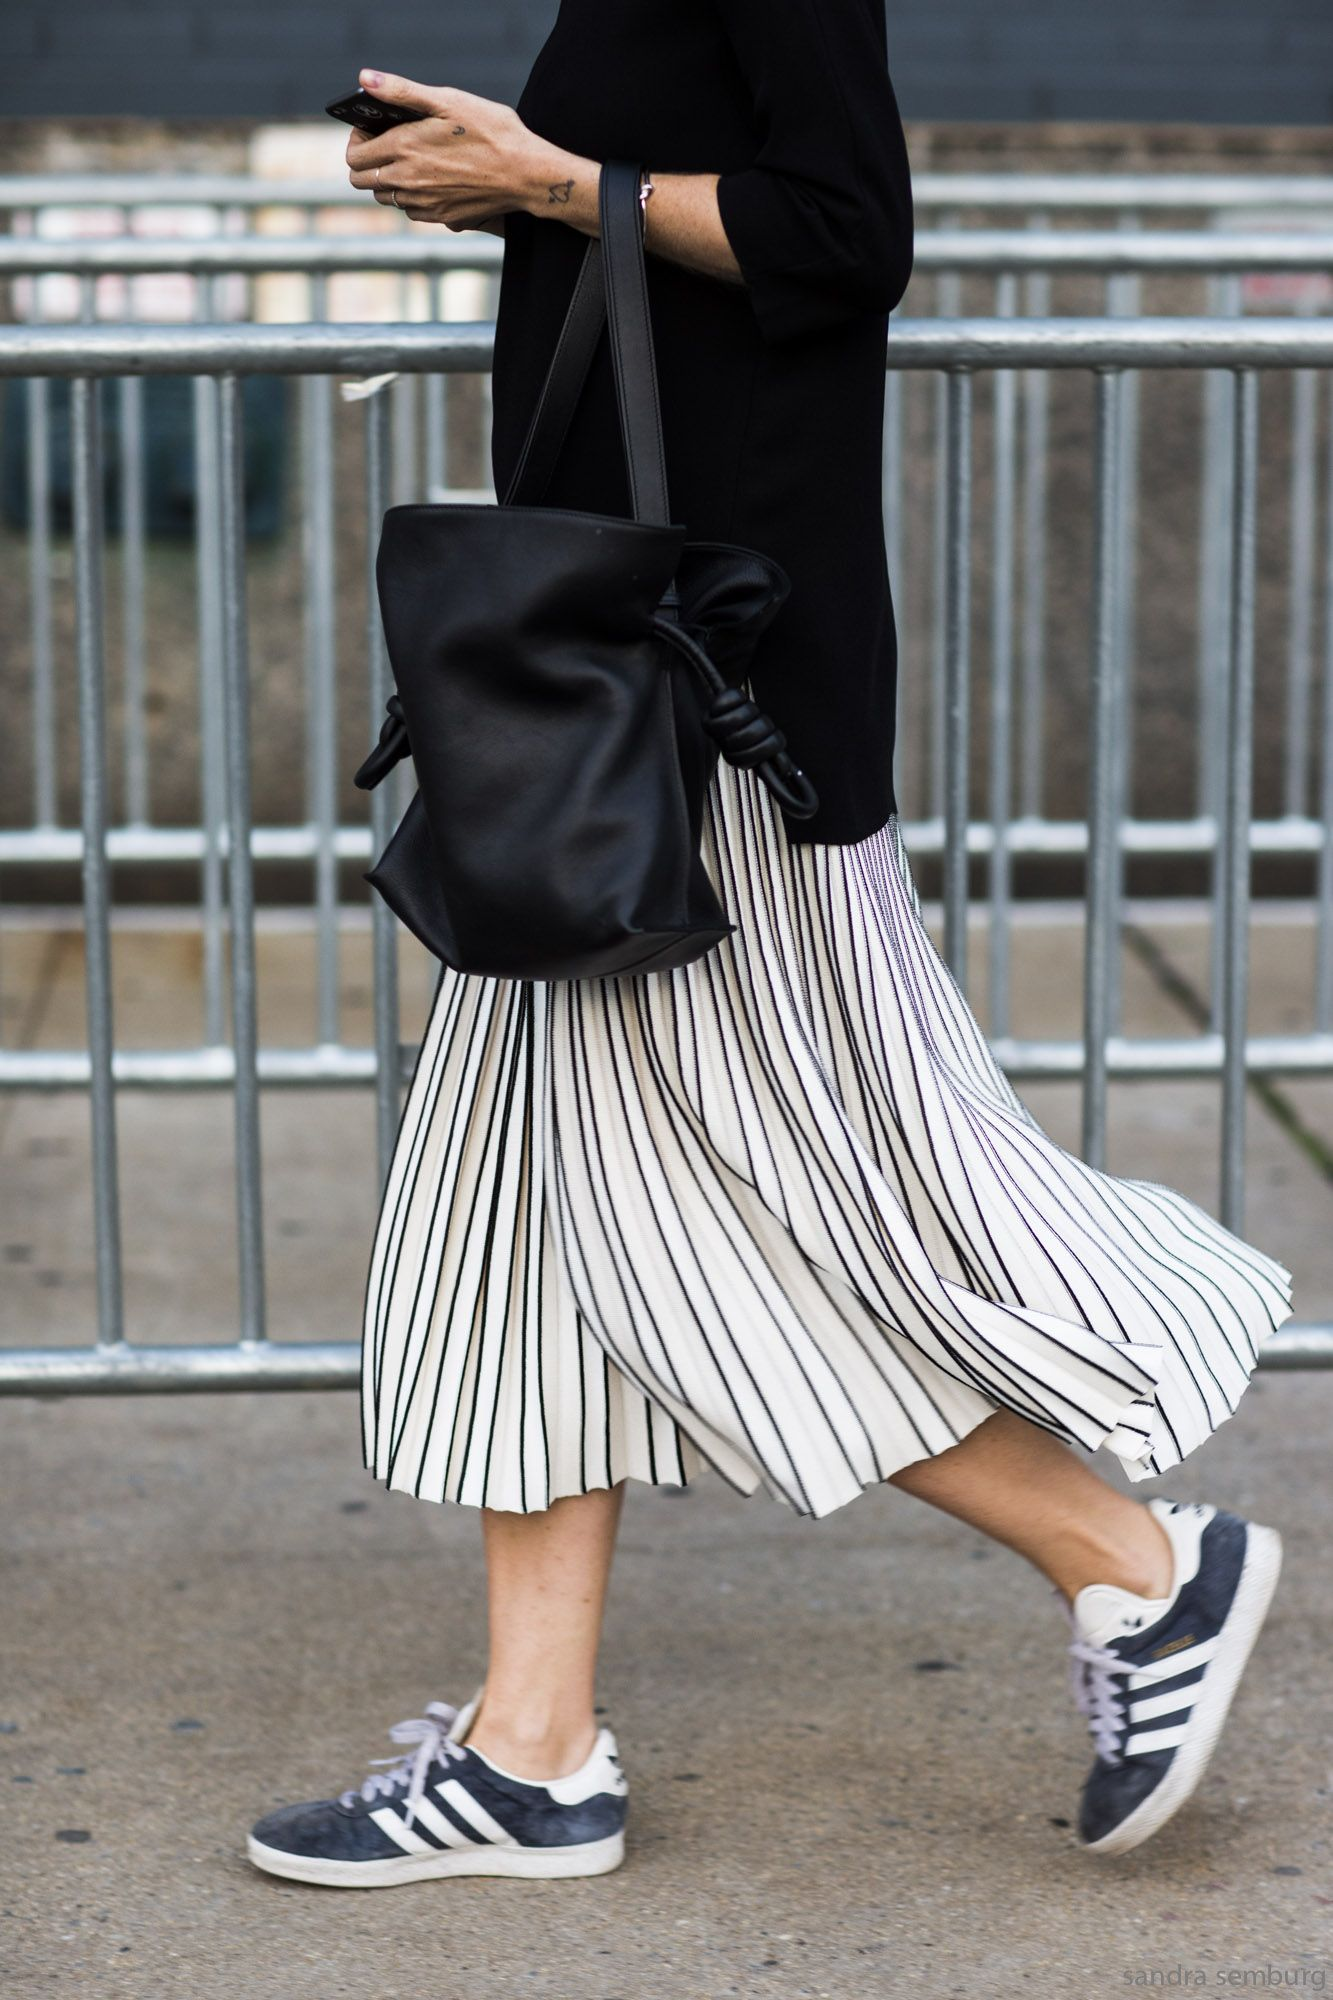 e316495d0b The Biggest Street Style Trends From Fashion Month